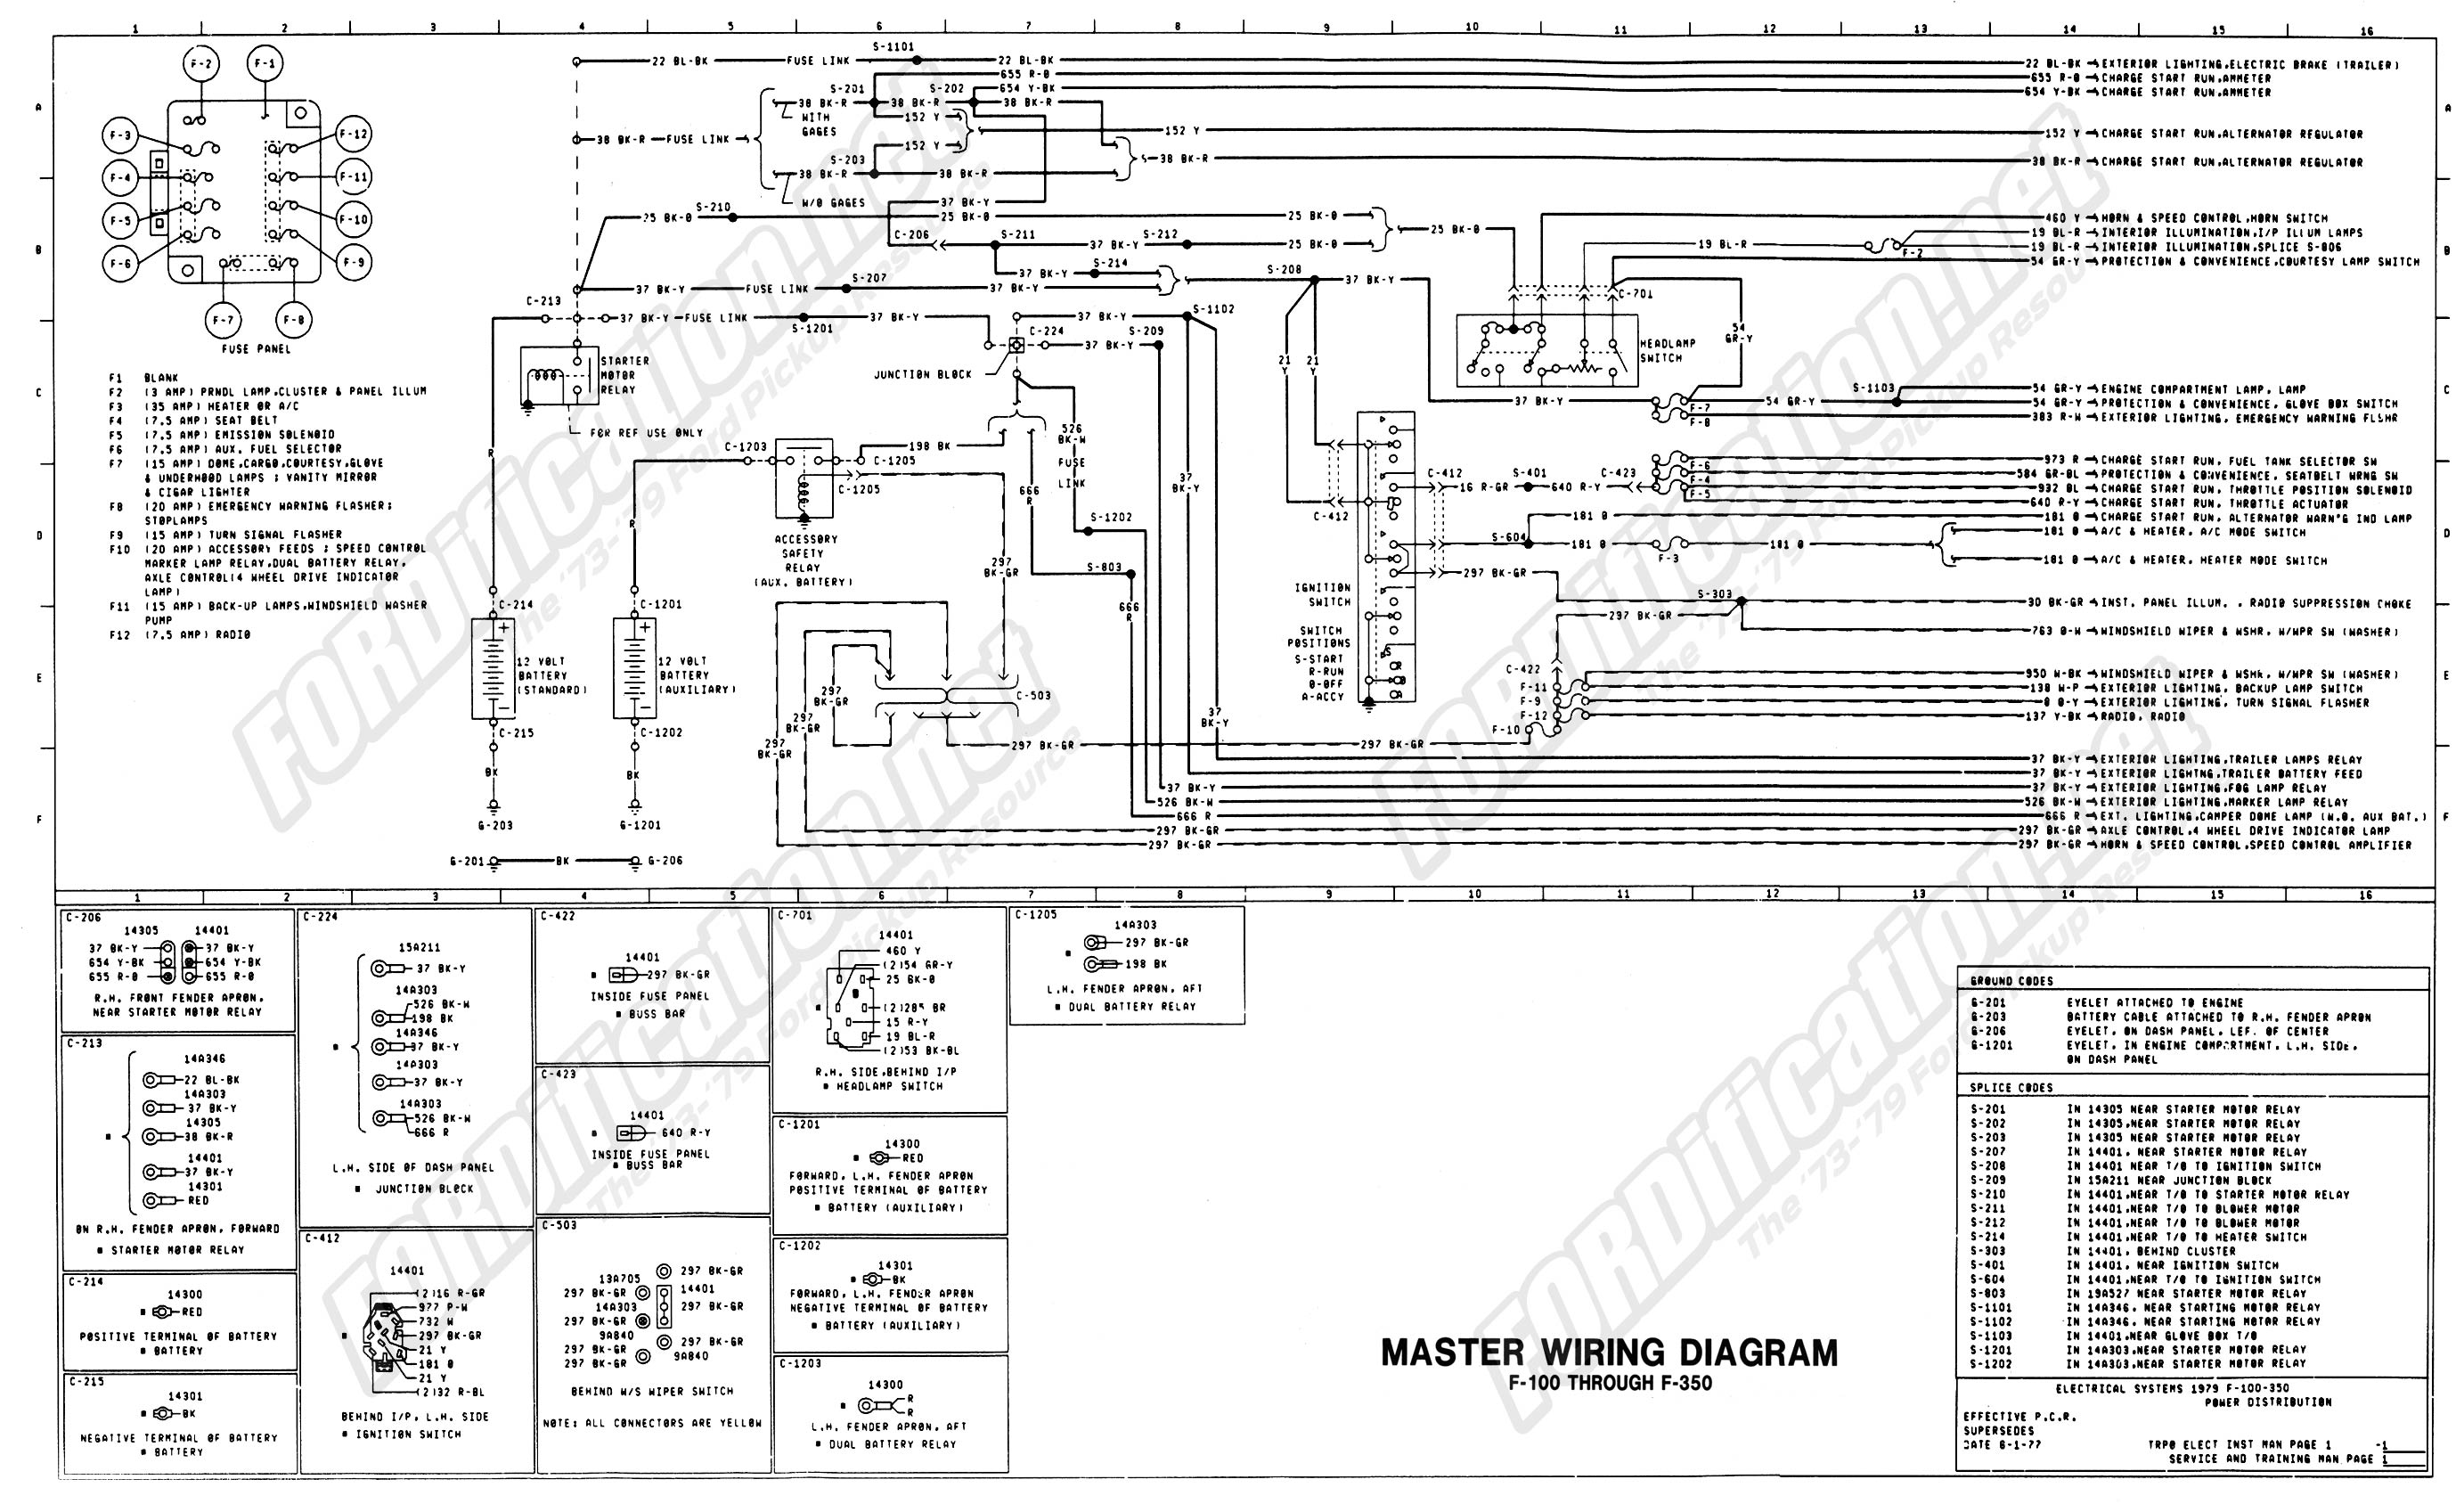 wiring diagram for 1977 ford f150 the wiring diagram 1979 f100 ignition switch wiring diagram positions ford truck wiring diagram